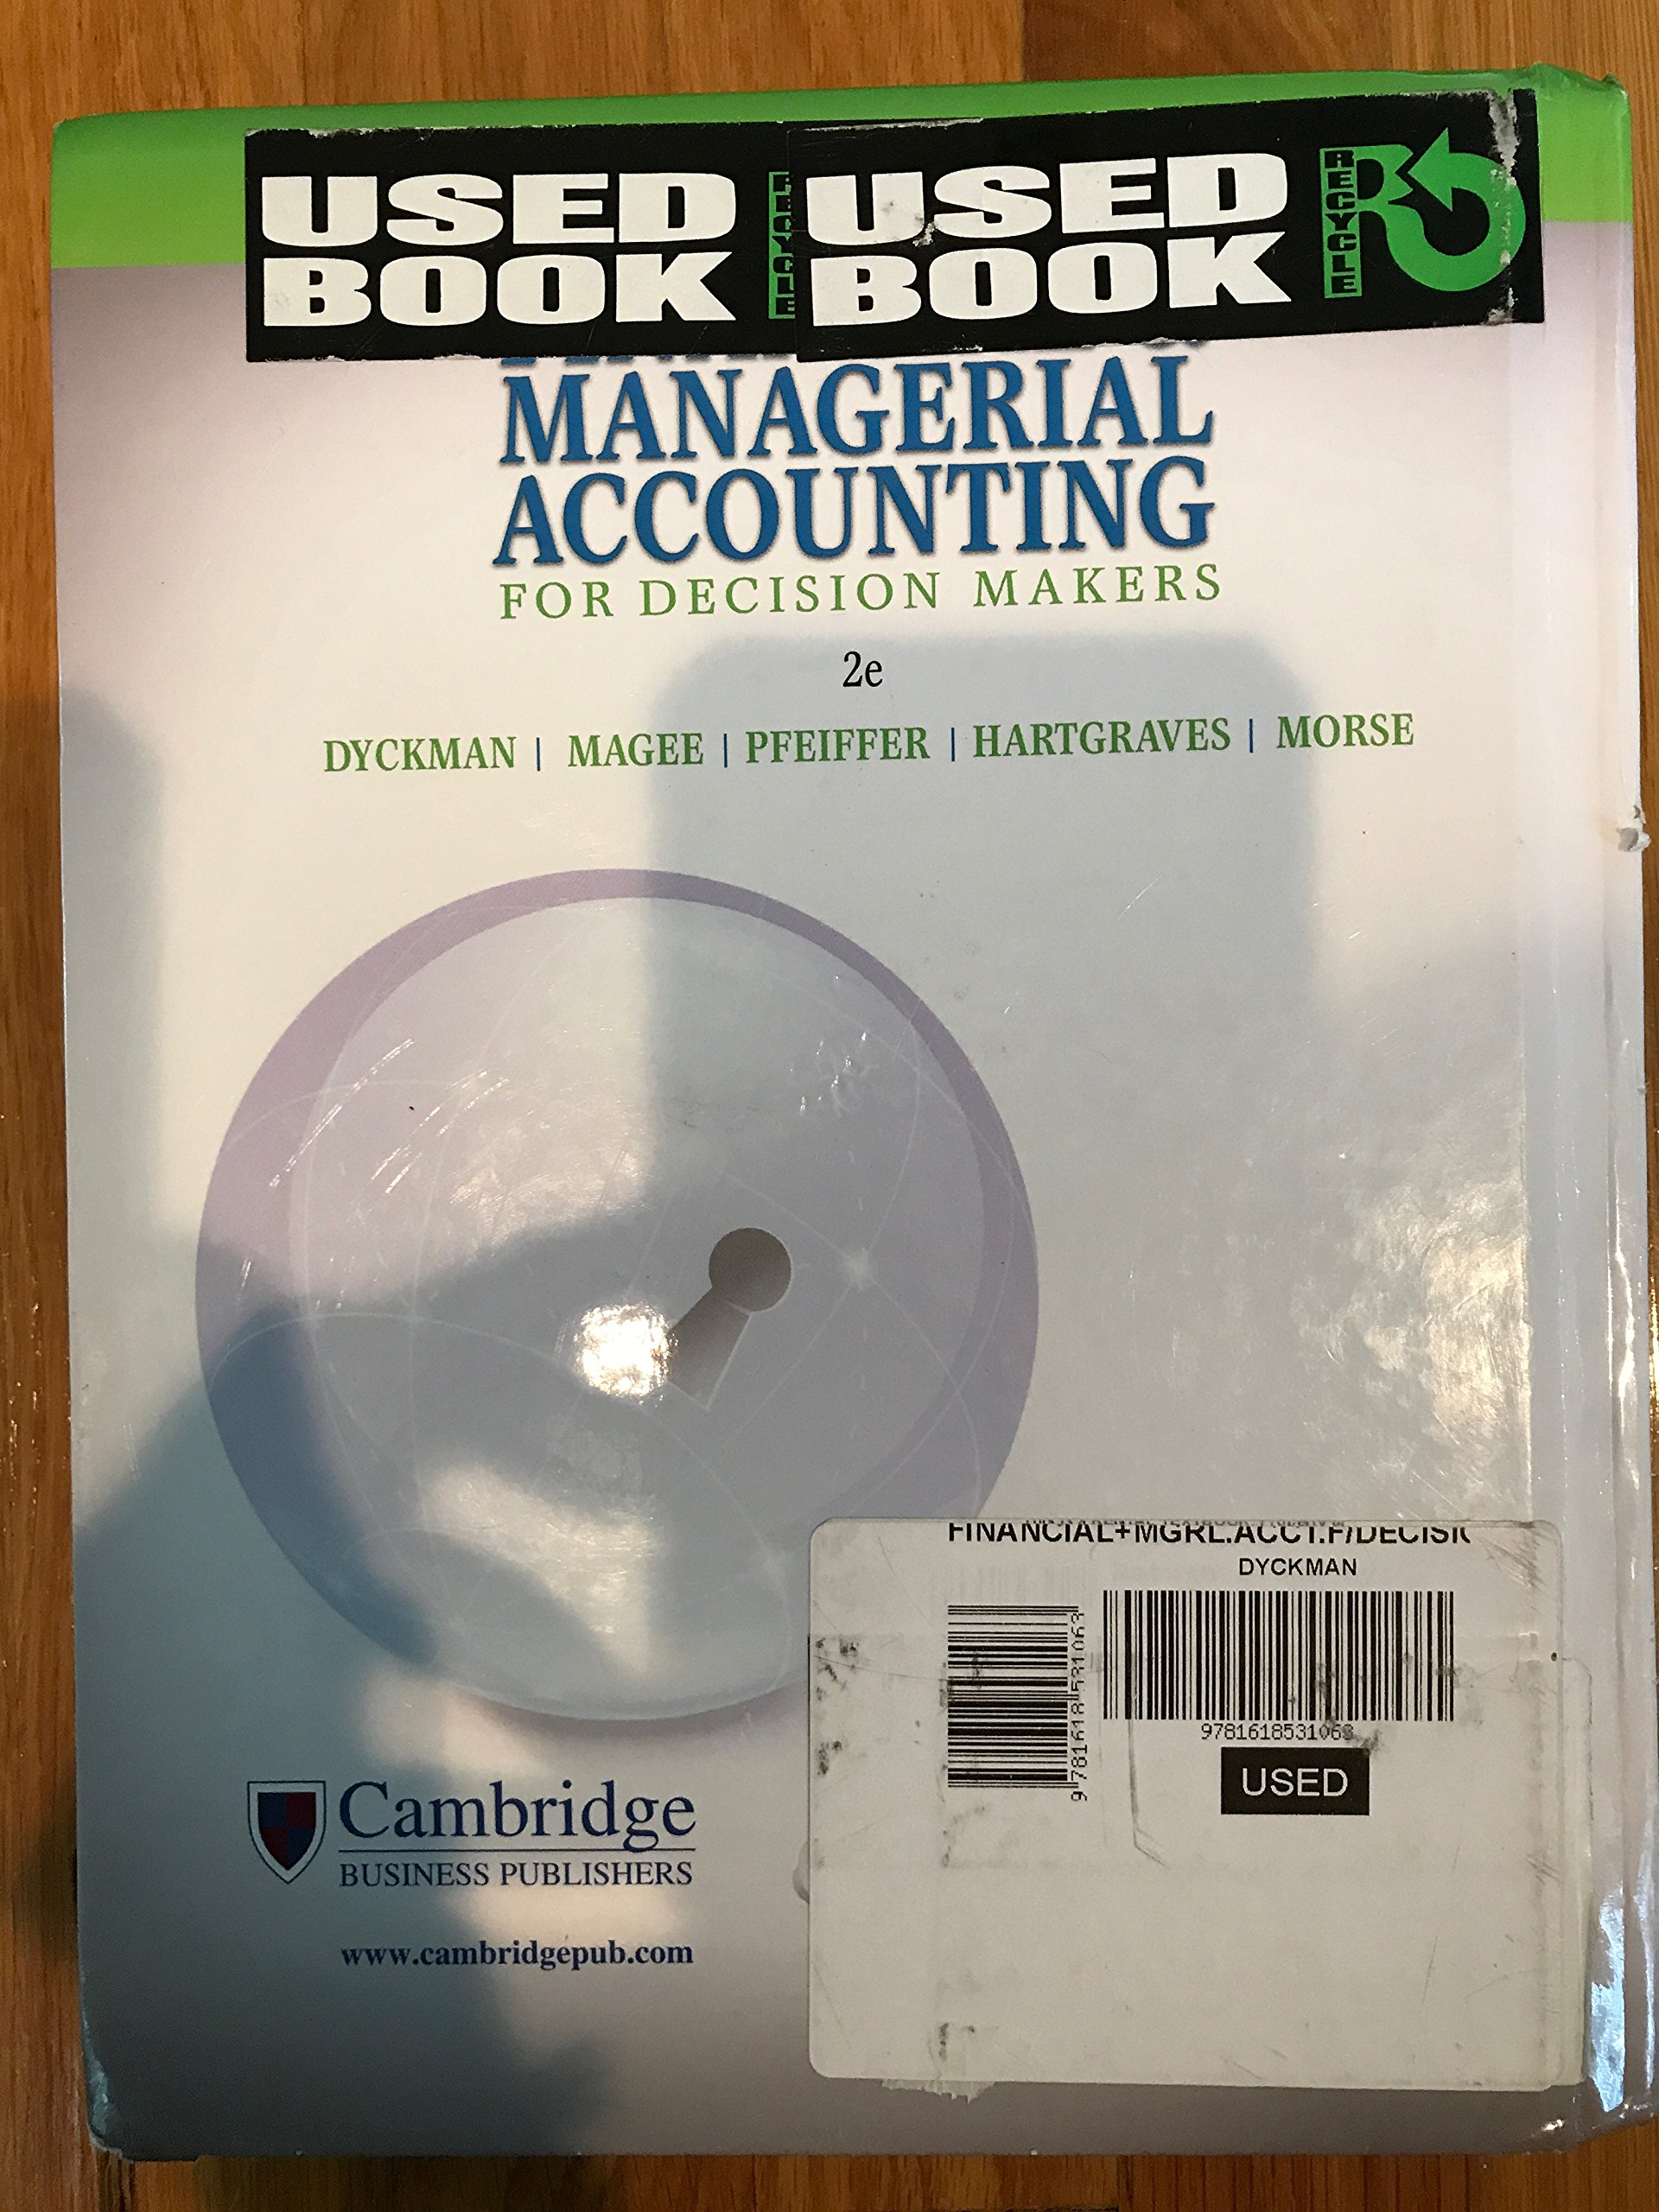 Financial managerial accounting for decision makers thomas r financial managerial accounting for decision makers thomas r dyckman robert p magee glenn m pfeiffer al l hartgraves wayne j morse fandeluxe Image collections